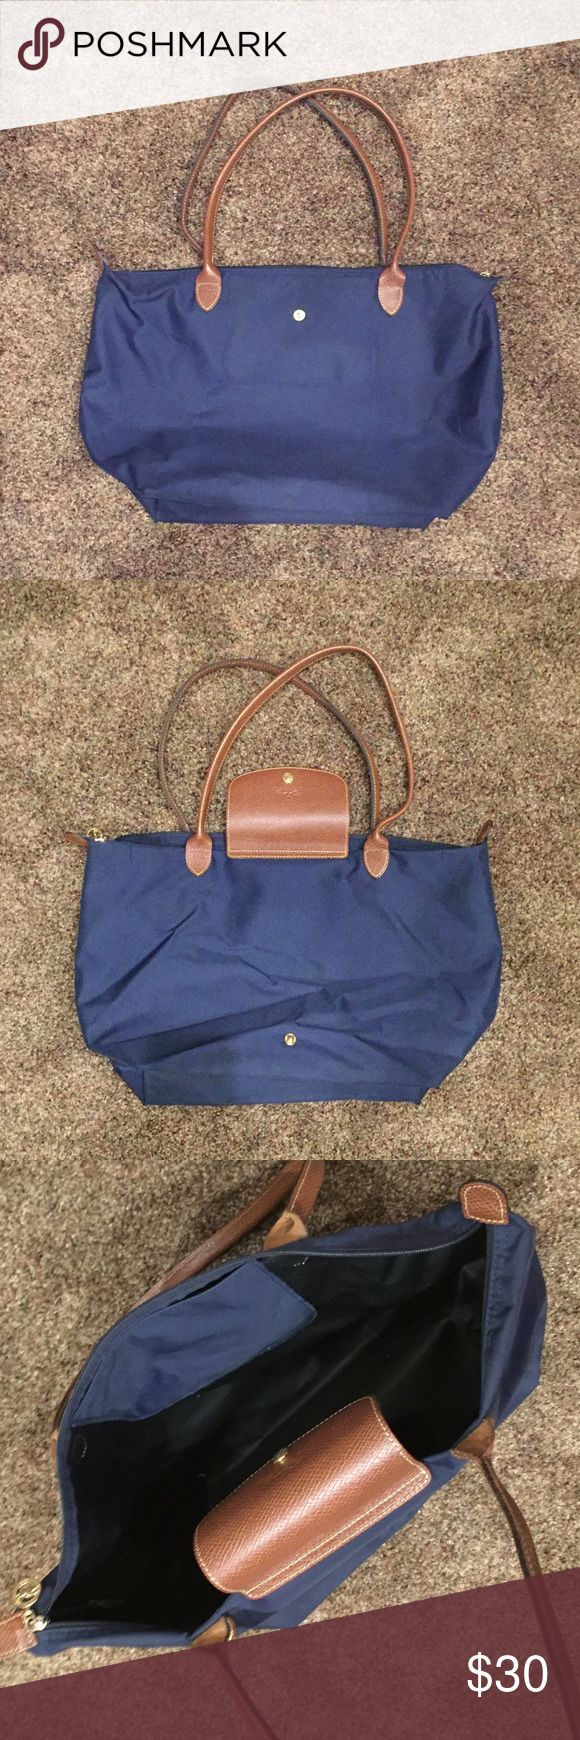 Navy Longchamp Bag Large Used, shows signs of wear. Light scratches and small holes at bottom corners (like Long Champ bags typically get). Still in good condition. Longchamp Bags Shoulder Bags